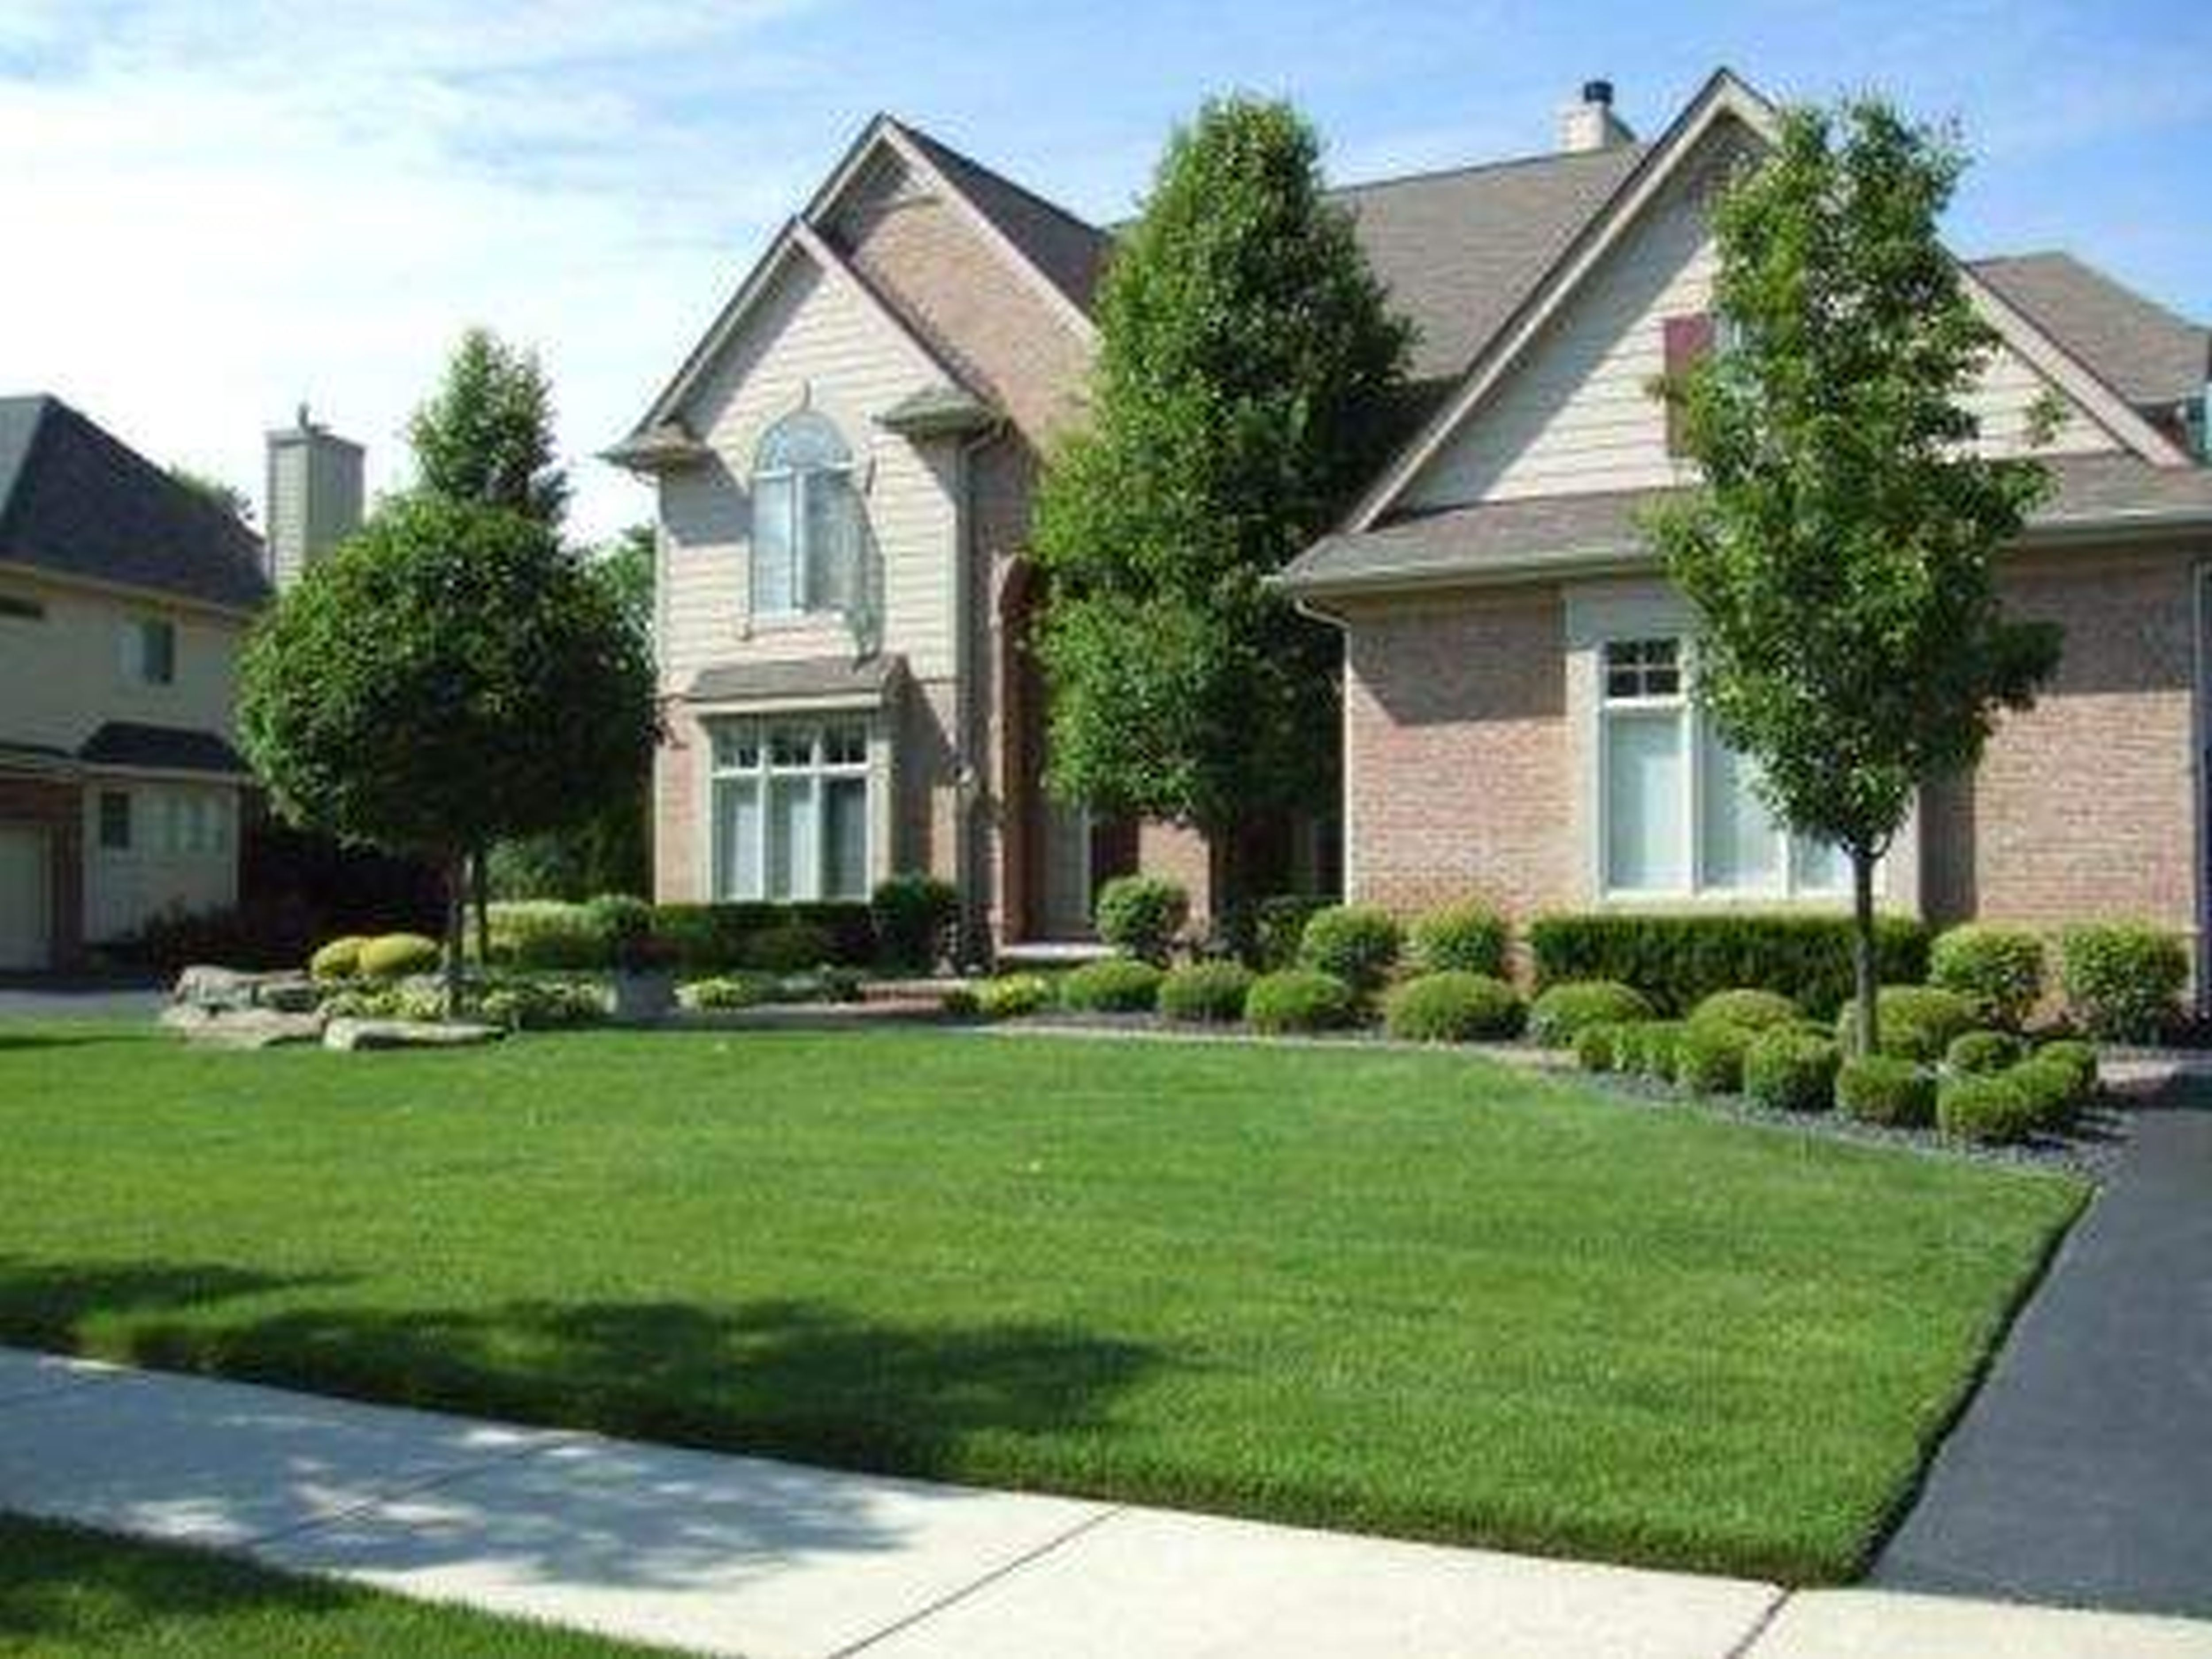 green gr feat green plants and trees in front of brown brick ... on ranch style home landscape design, colonial home landscape design, victorian house landscape design,